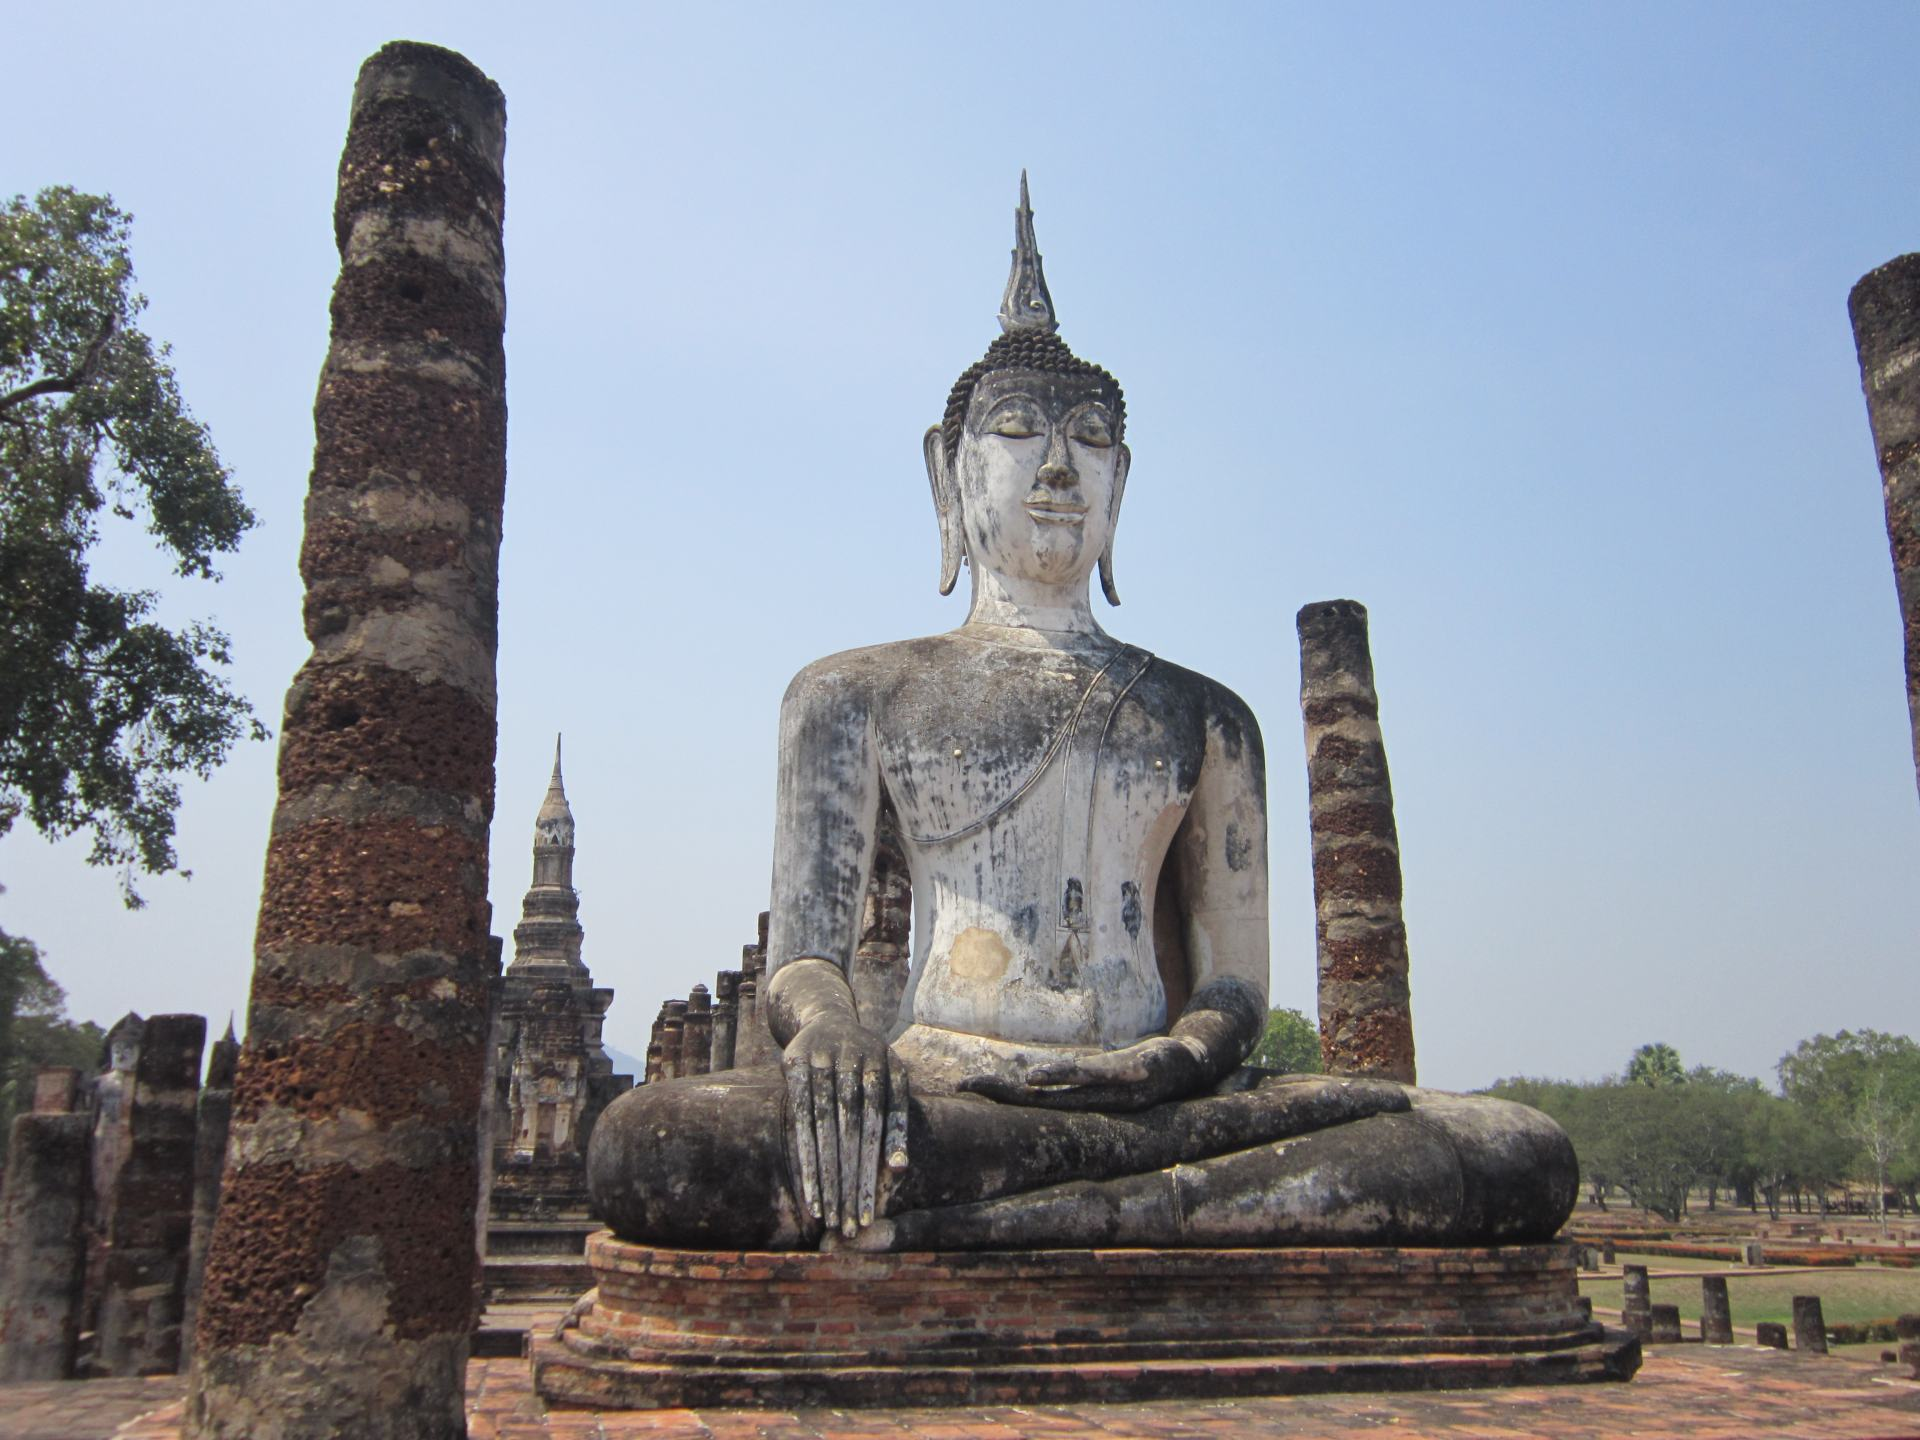 A statue of a meditating Buddha at the Sukhothai Historical Park. The statue is weathered ands there are several stone pillars in the picture too.